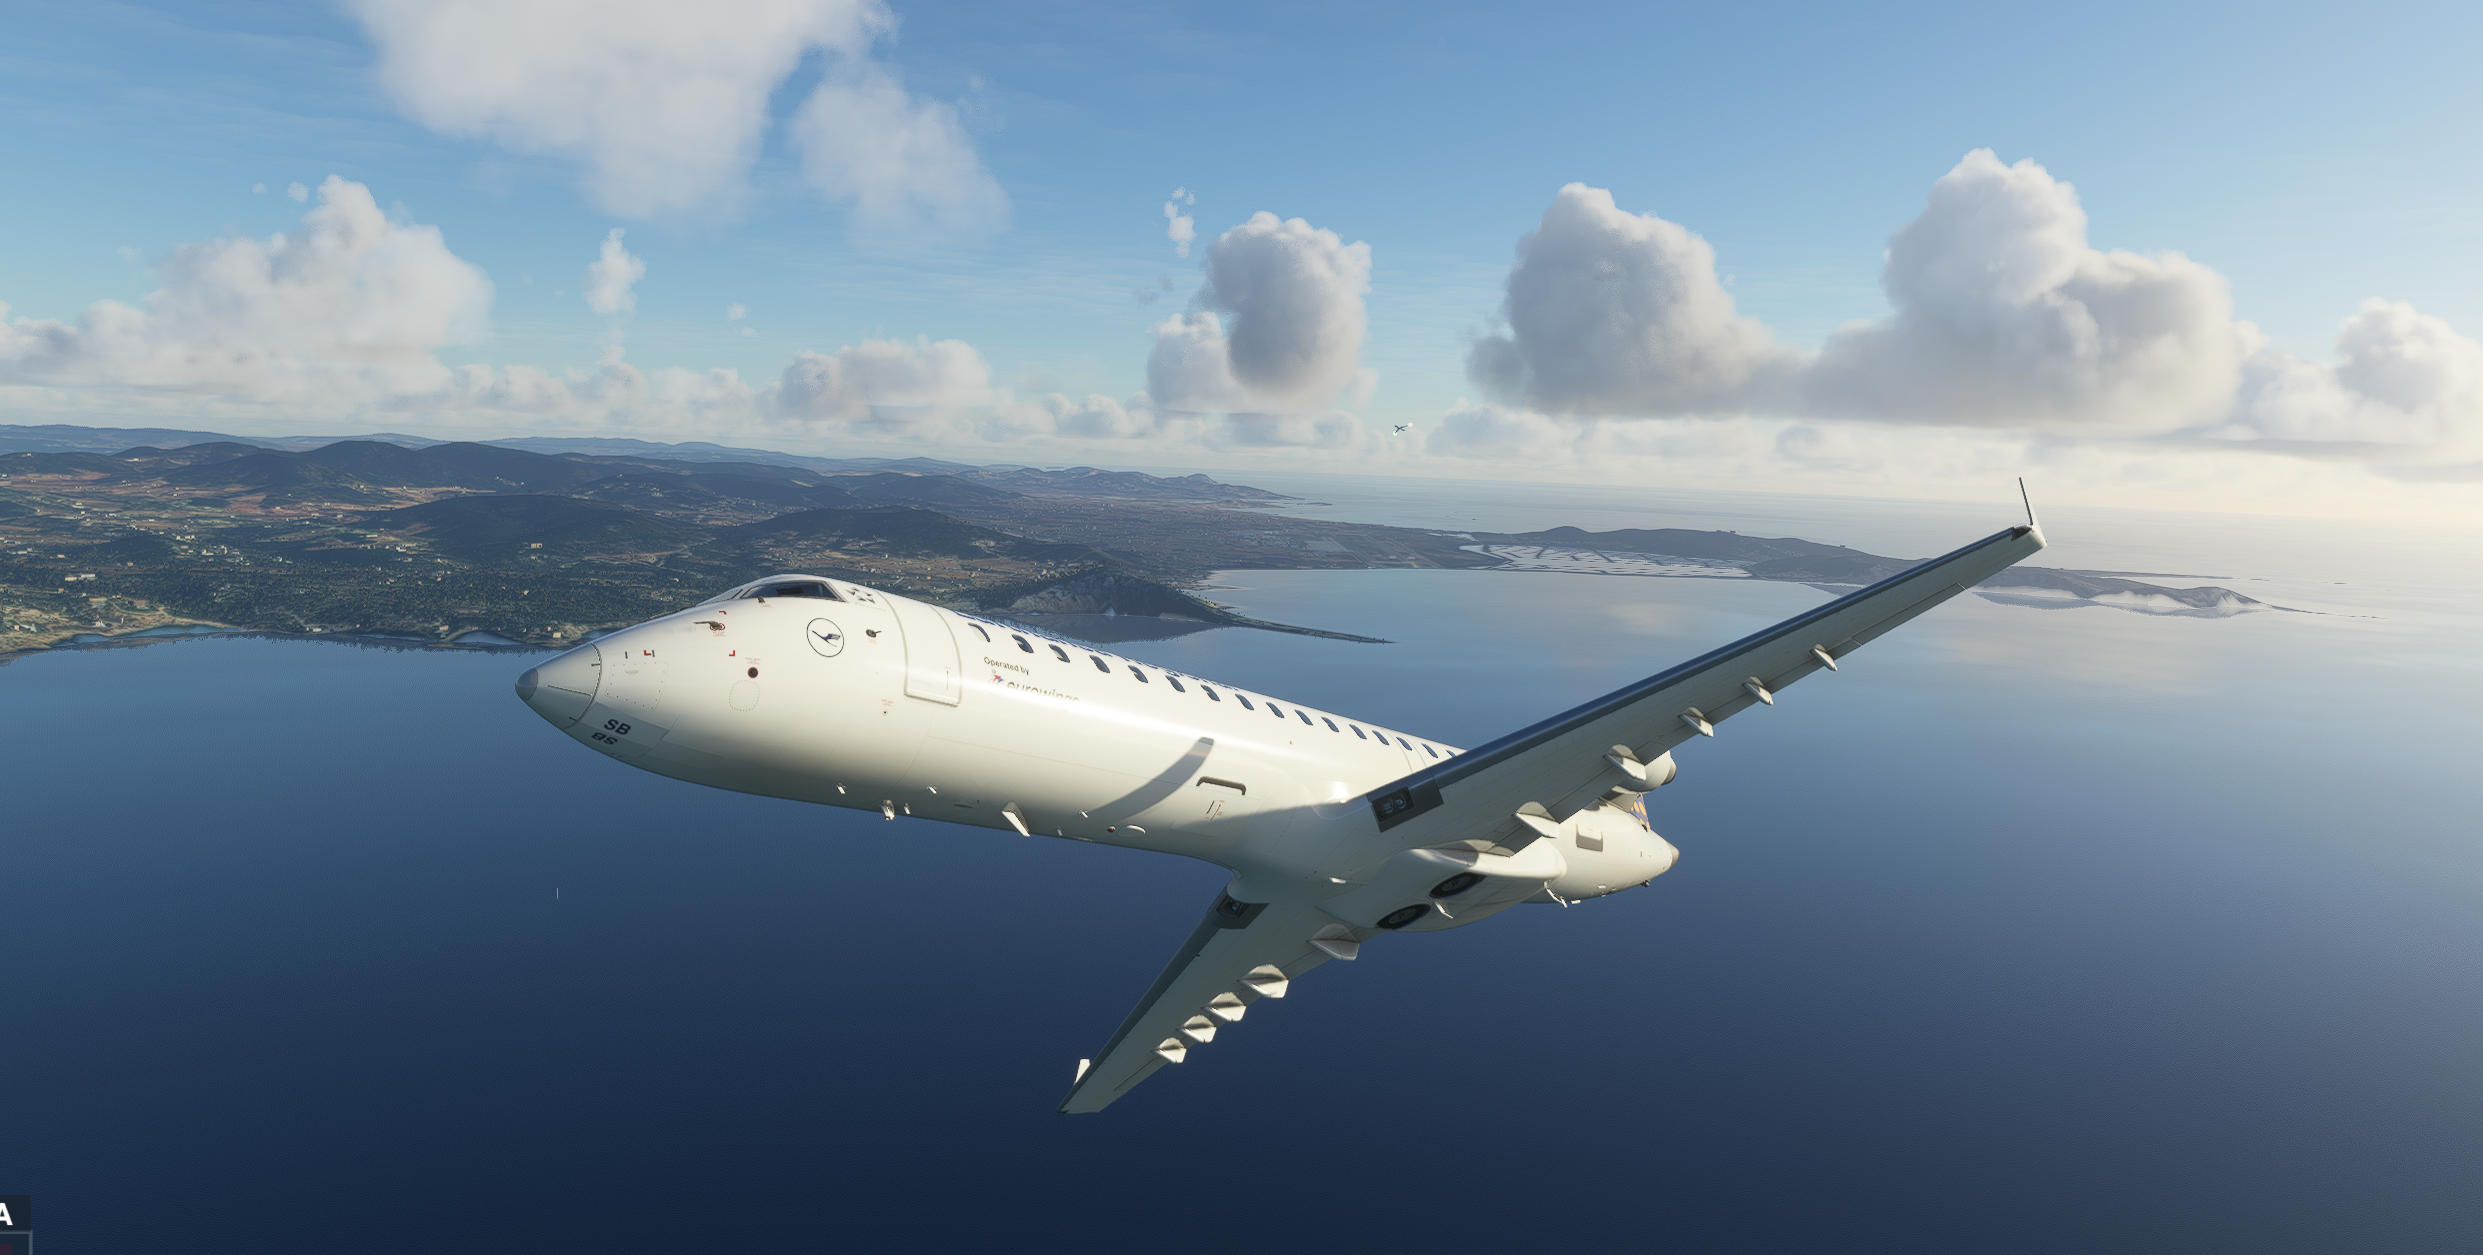 Aerosoft Posts New Previews of Upcoming CRJ Series for MSFS